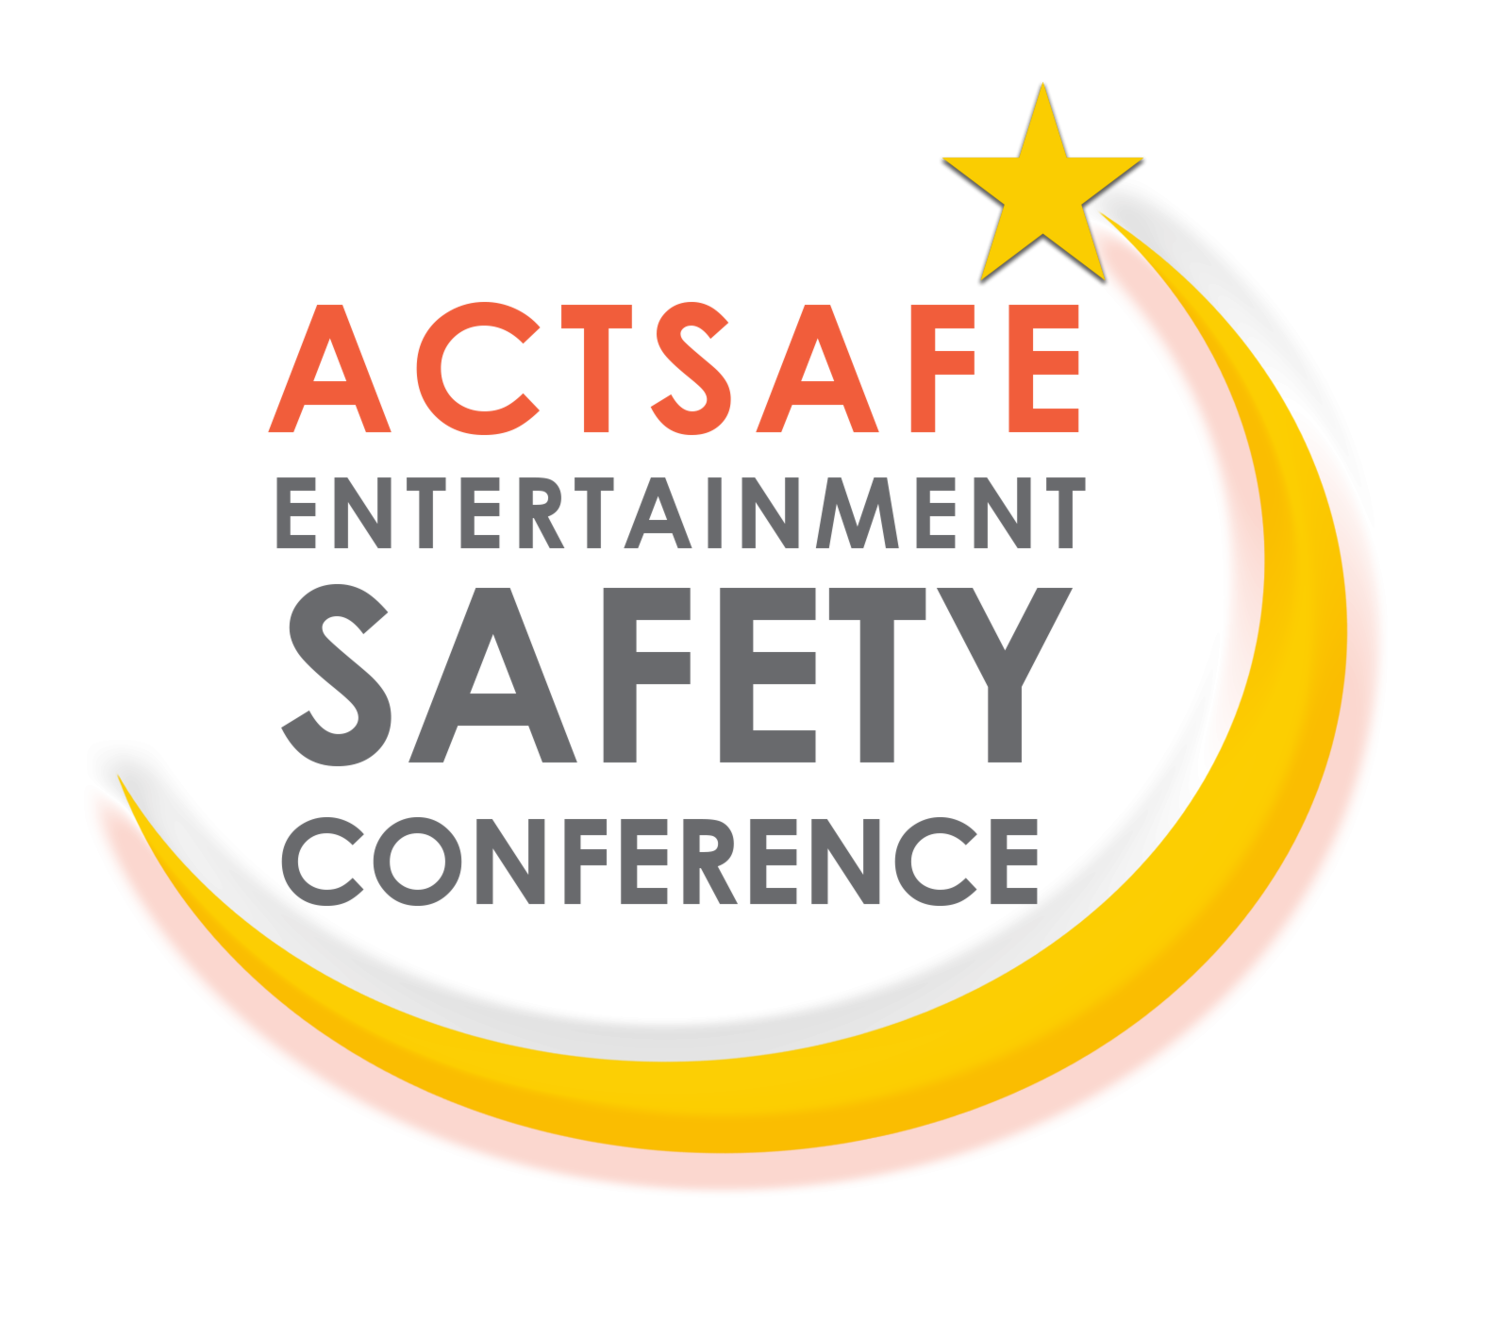 Actsafe 2019 Event Safety Conference